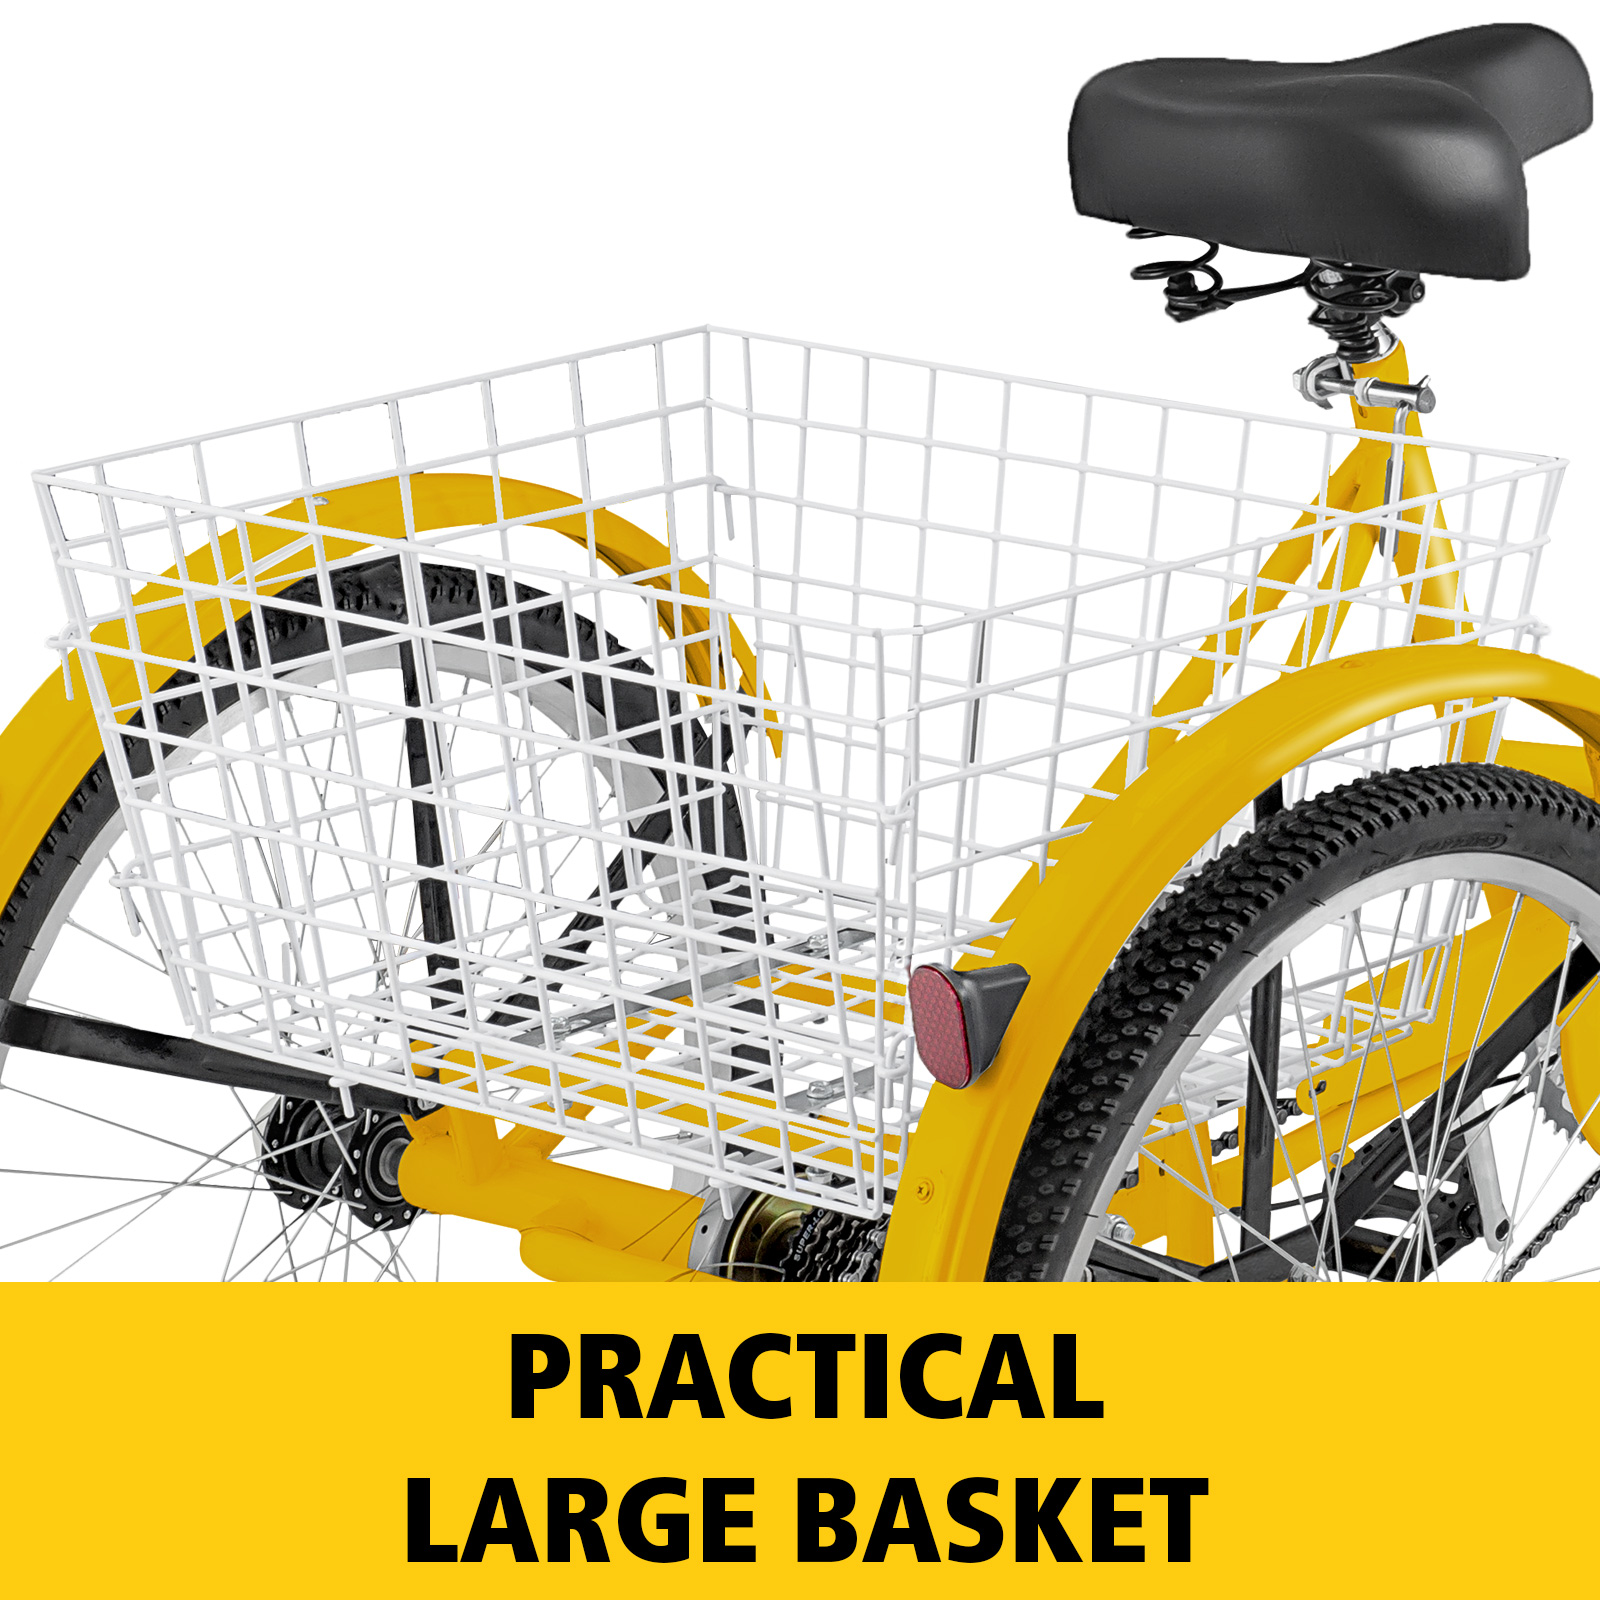 20-24-26-034-Adult-Tricycle-1-7-Speed-3-Wheel-Large-Basket-For-Shopping-Optional thumbnail 127